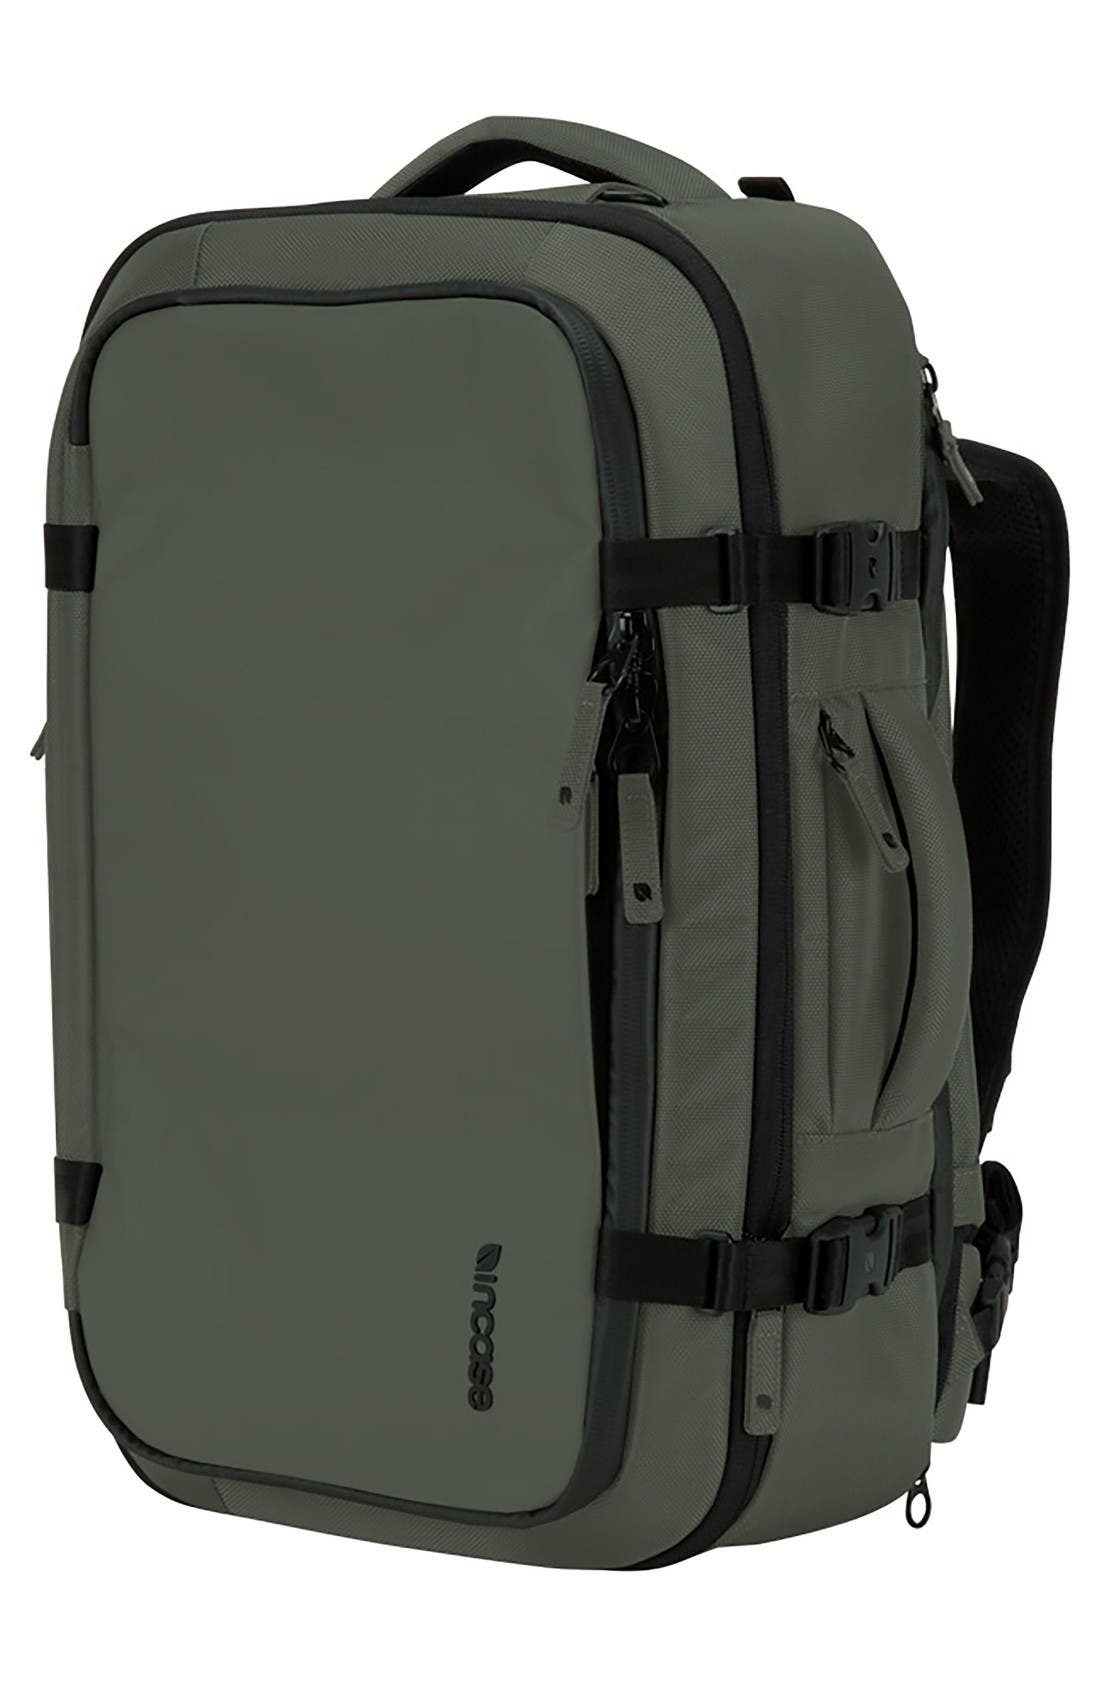 TRACTO Convertible Backpack,                             Alternate thumbnail 5, color,                             Anthracite